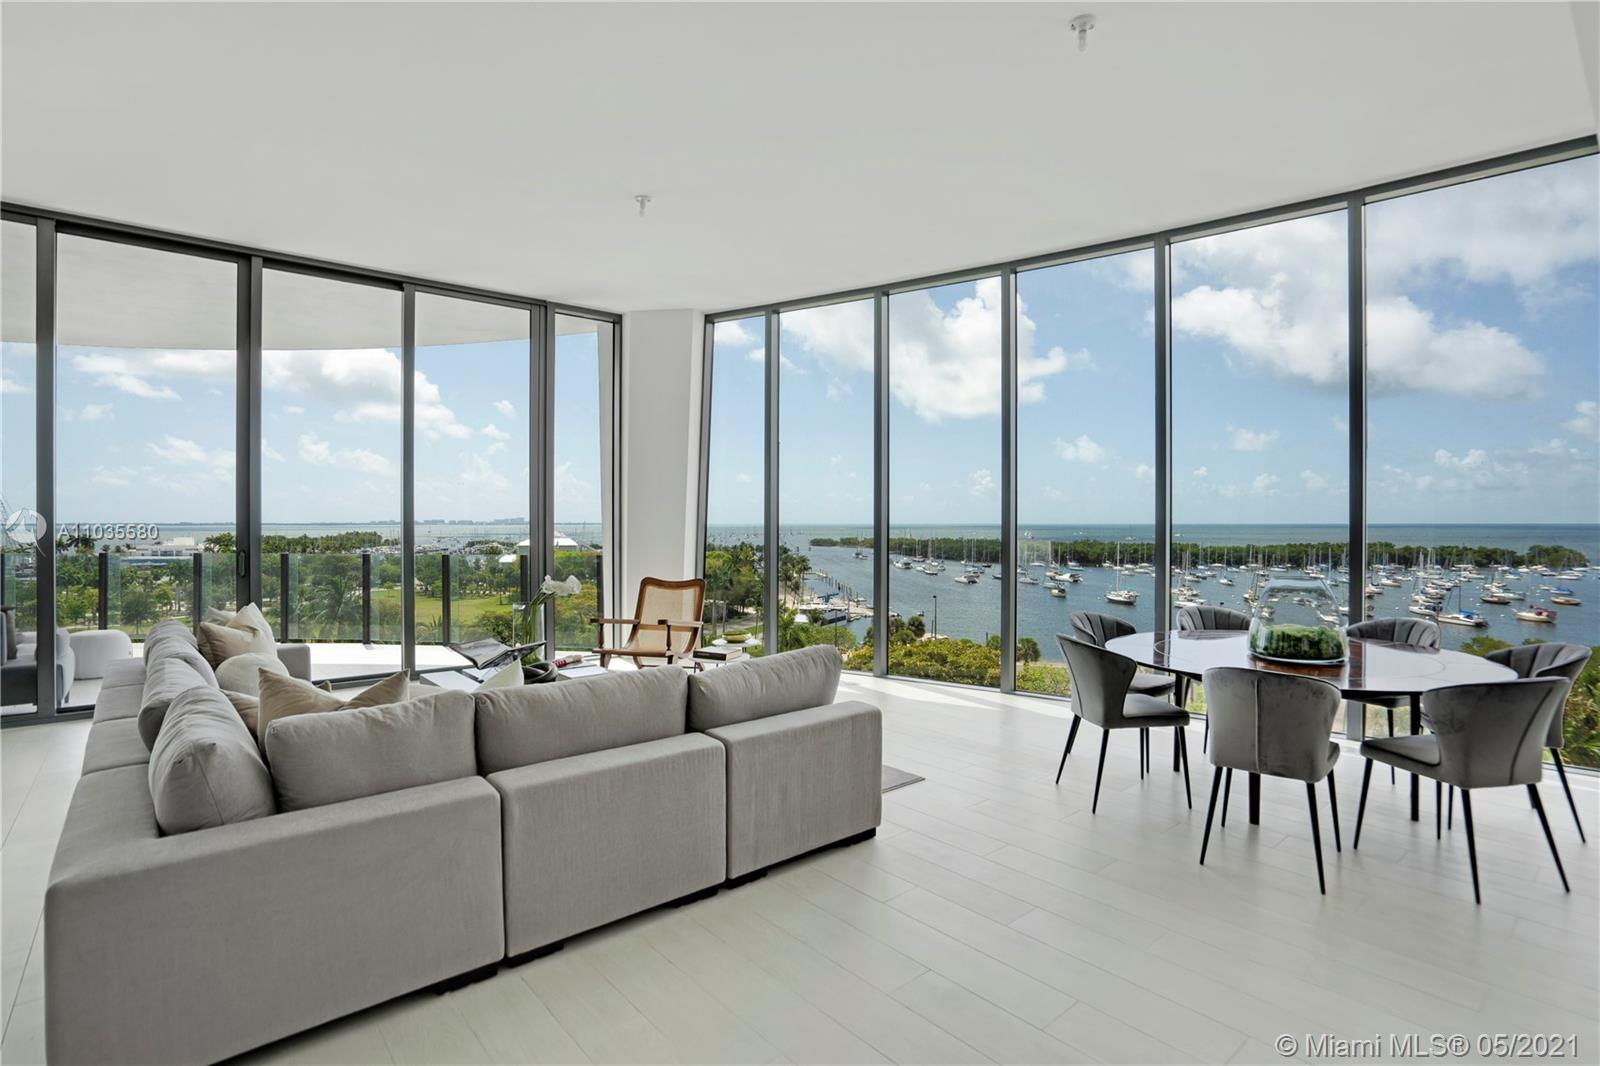 Stunning 4 Bedroom & den residence in the luxurious One Park Grove in Coconut Grove. This unit offer